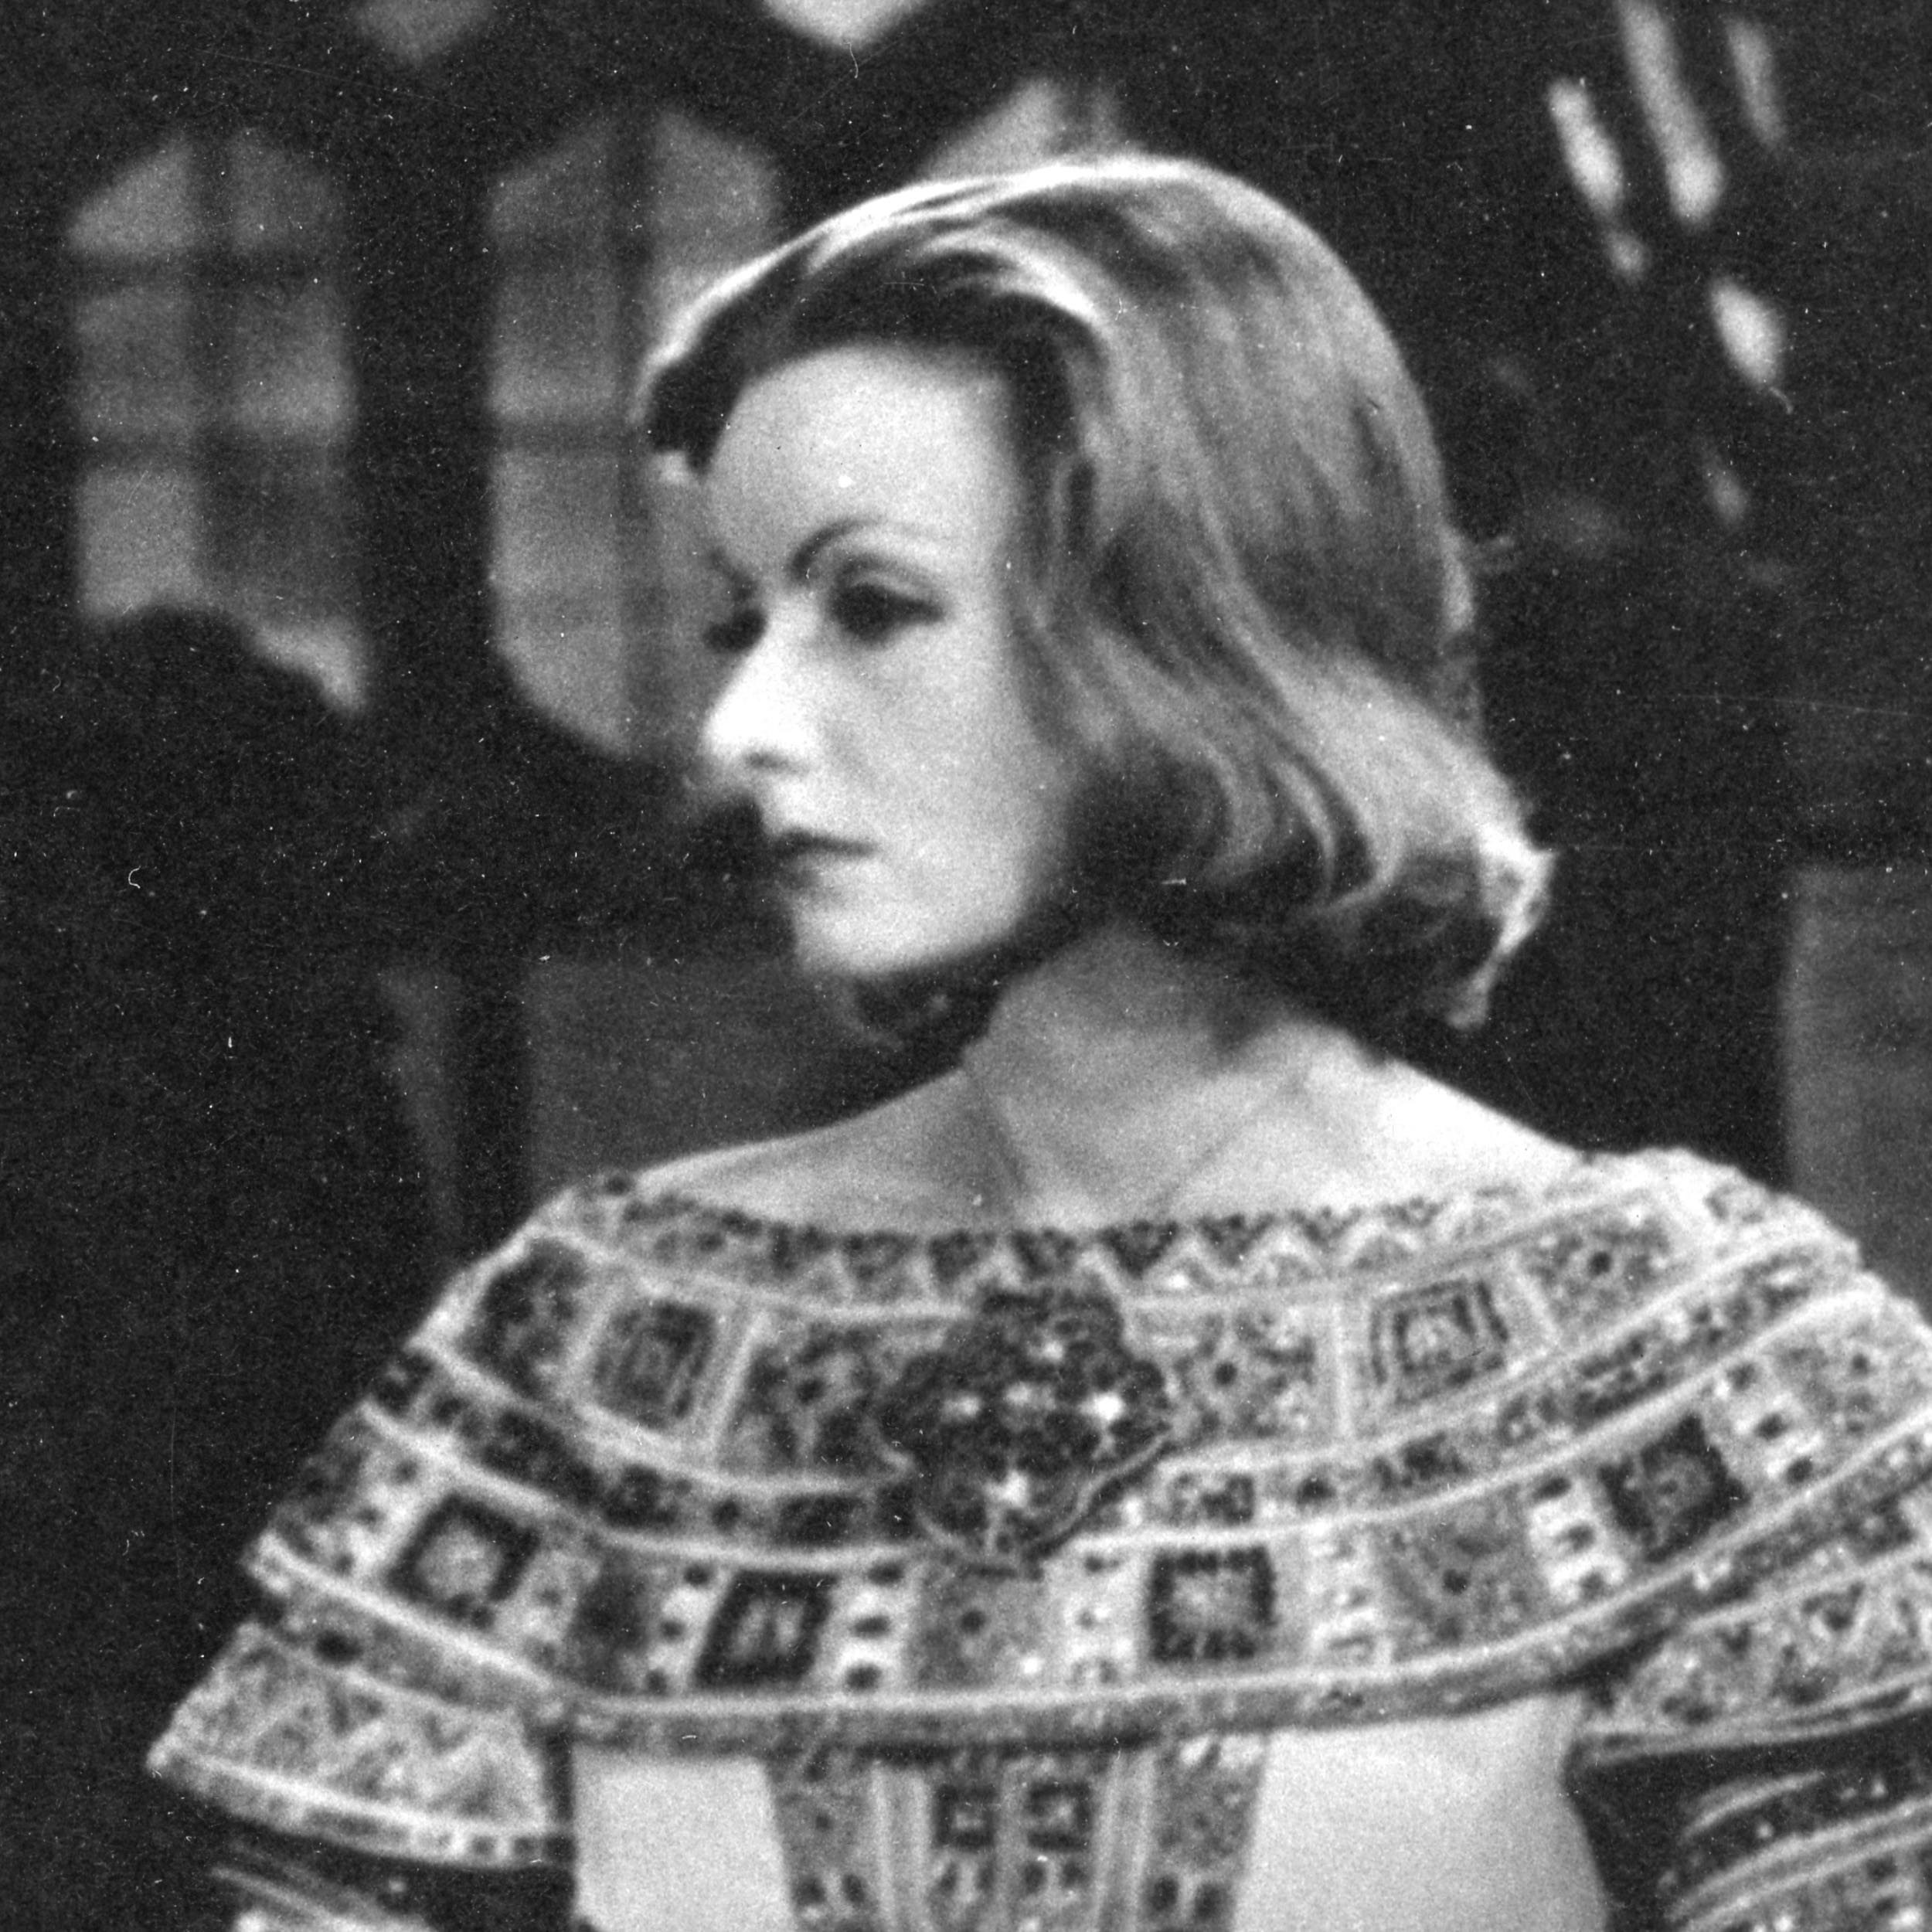 Greta Garbo in the film classic - Queen Christina